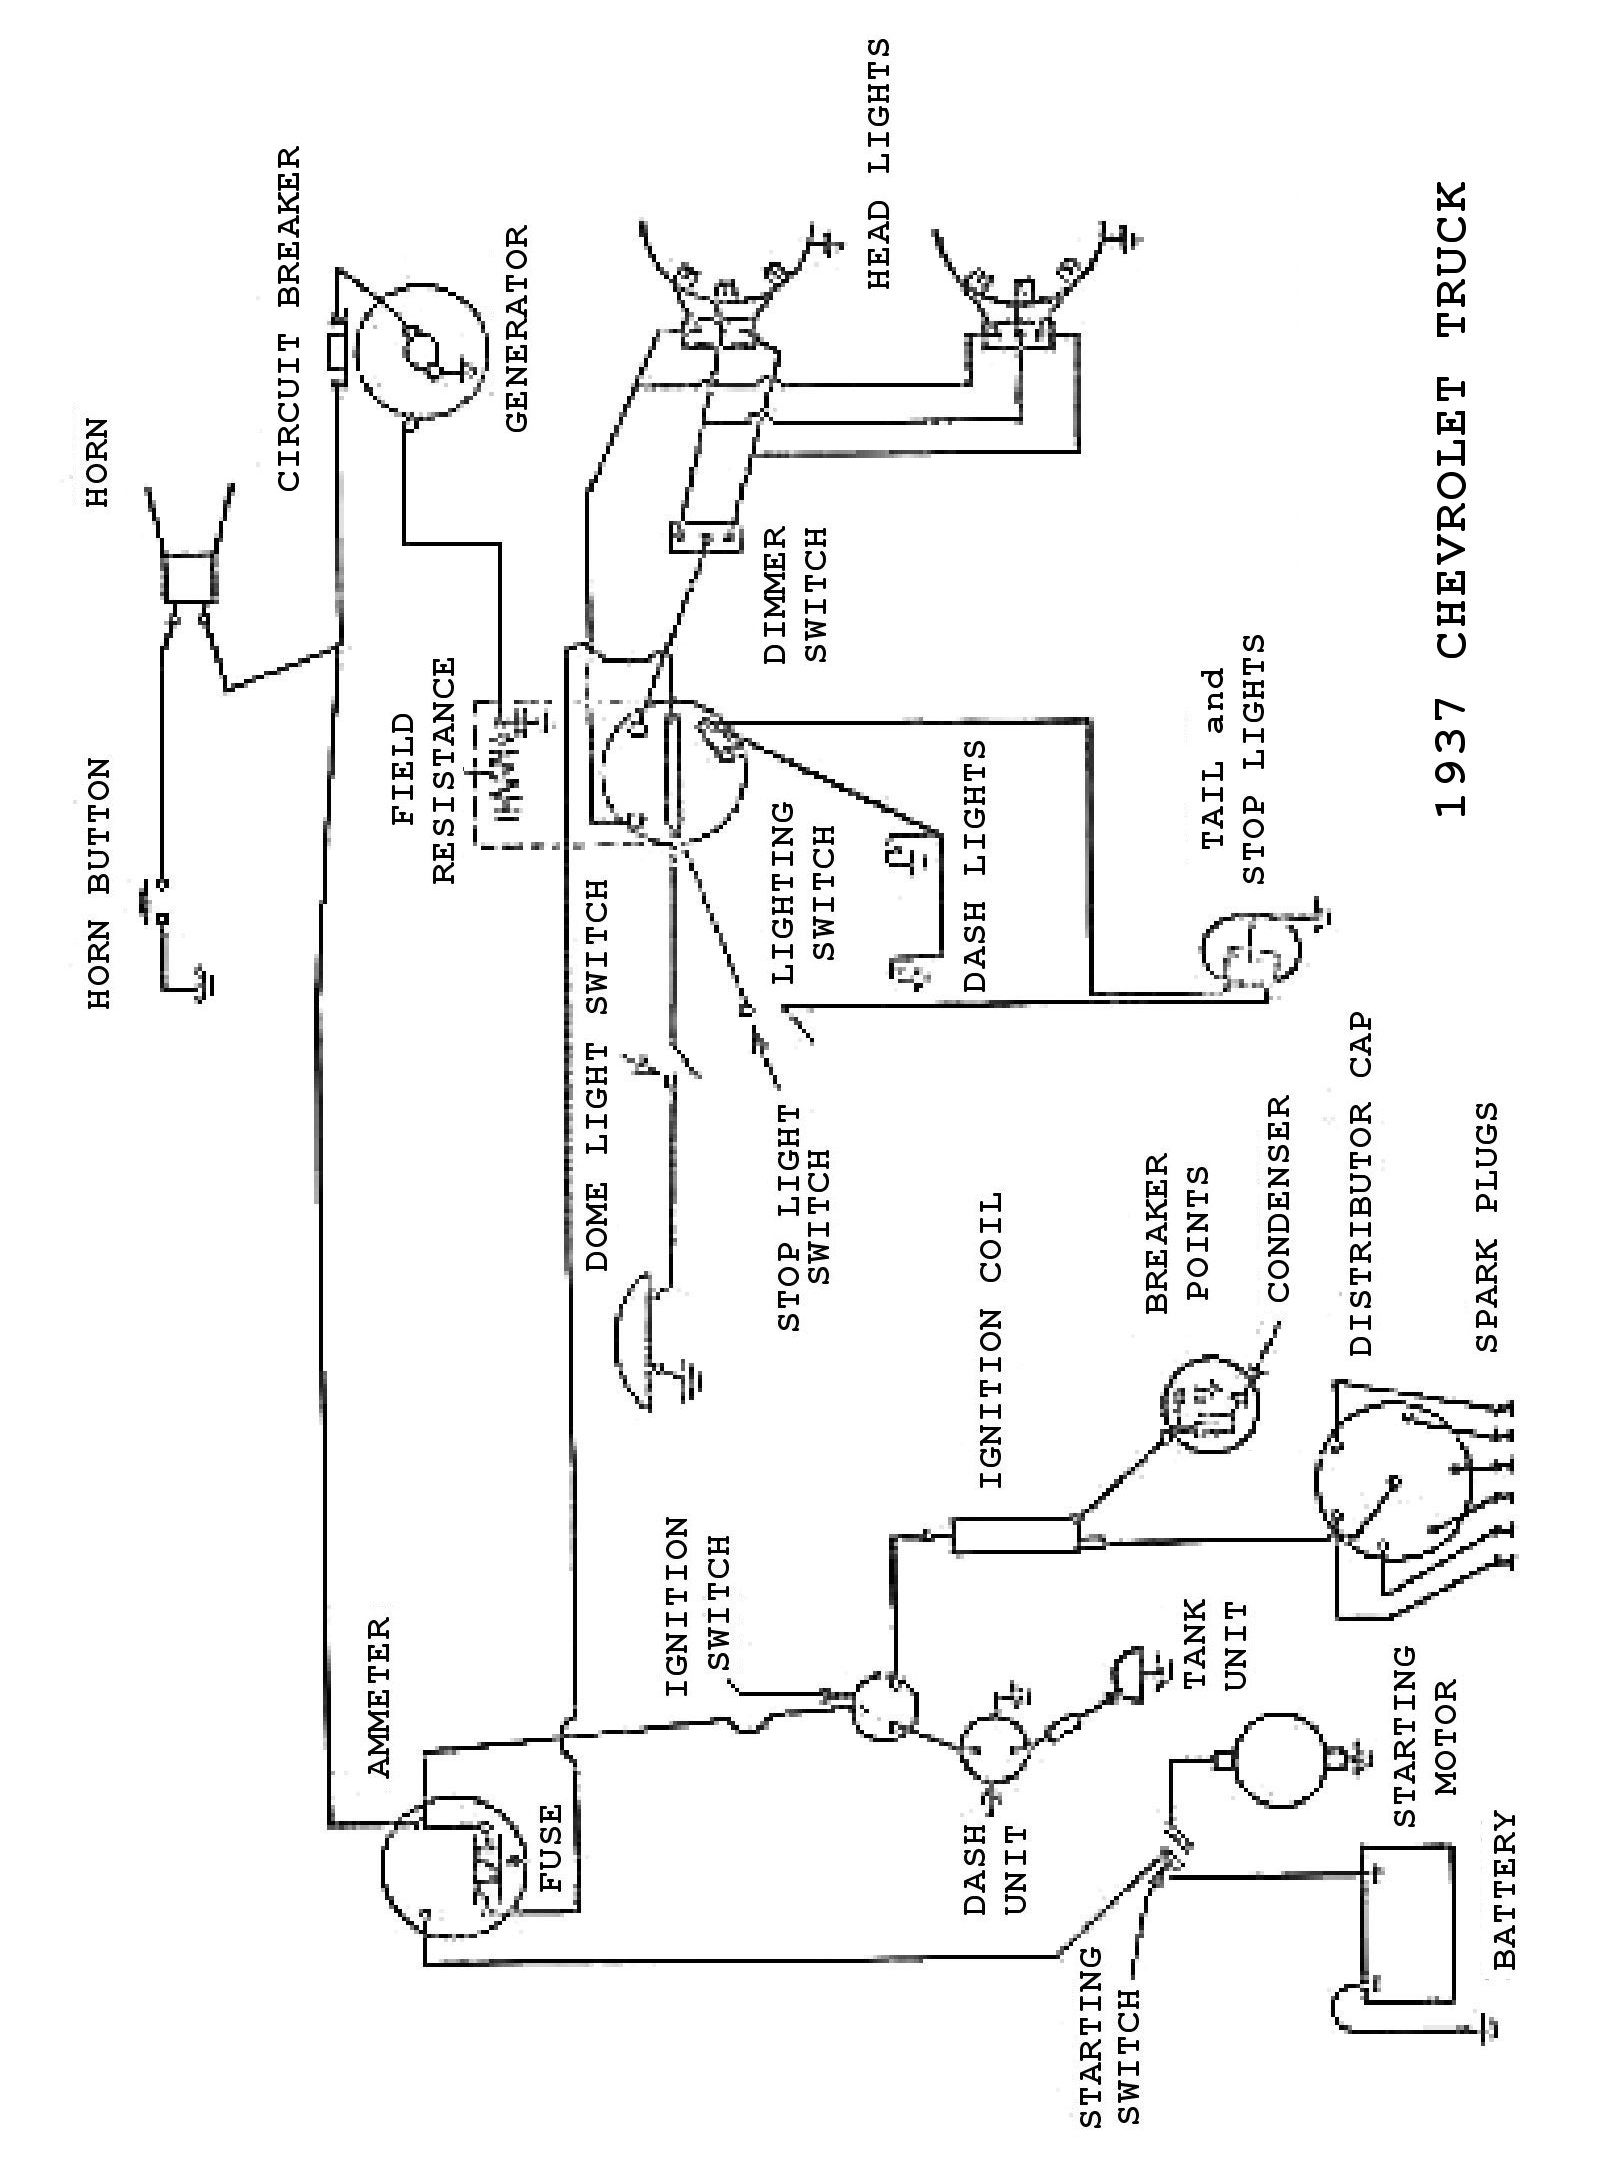 37truck chevy wiring diagrams Basic Electrical Wiring Diagrams at soozxer.org